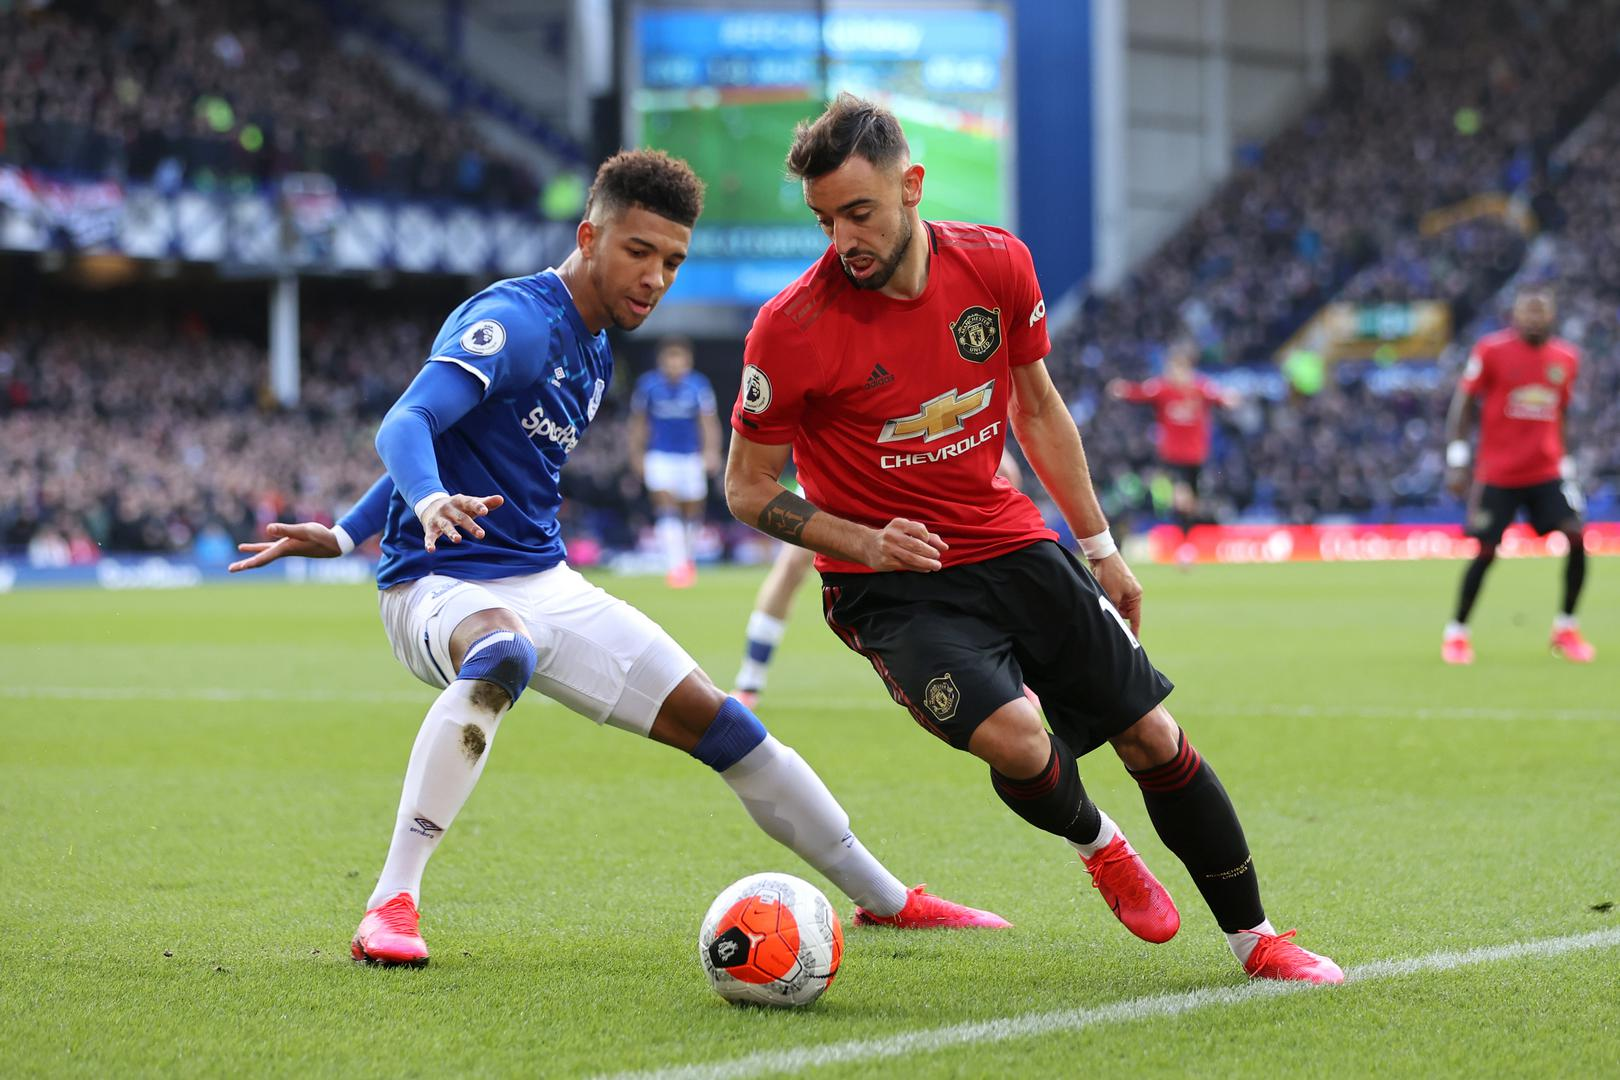 Everton Vs Manchester United English Premier League 01 March 2020 Manchester United Manchester United